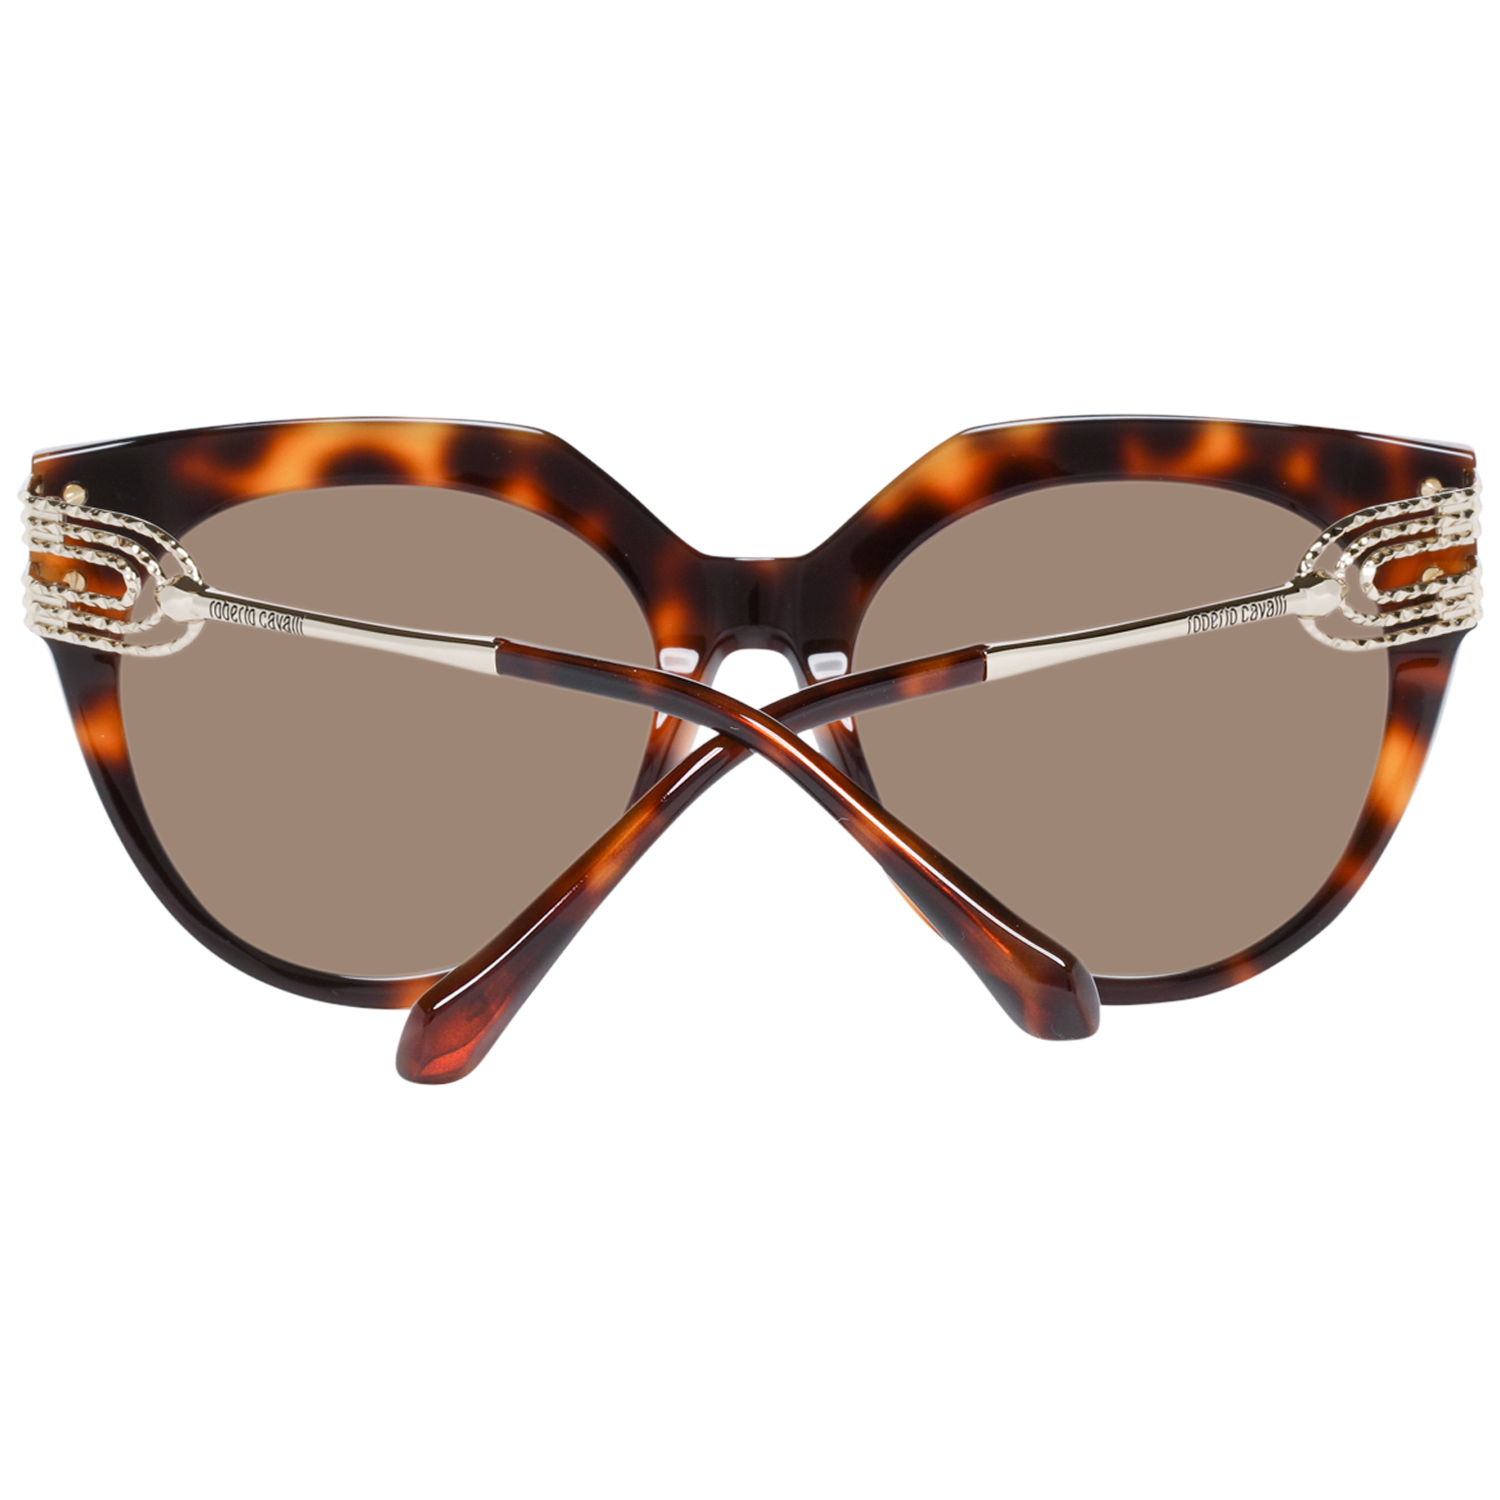 Roberto Cavalli Sunglasses RC1065 52G 56 Women Brown